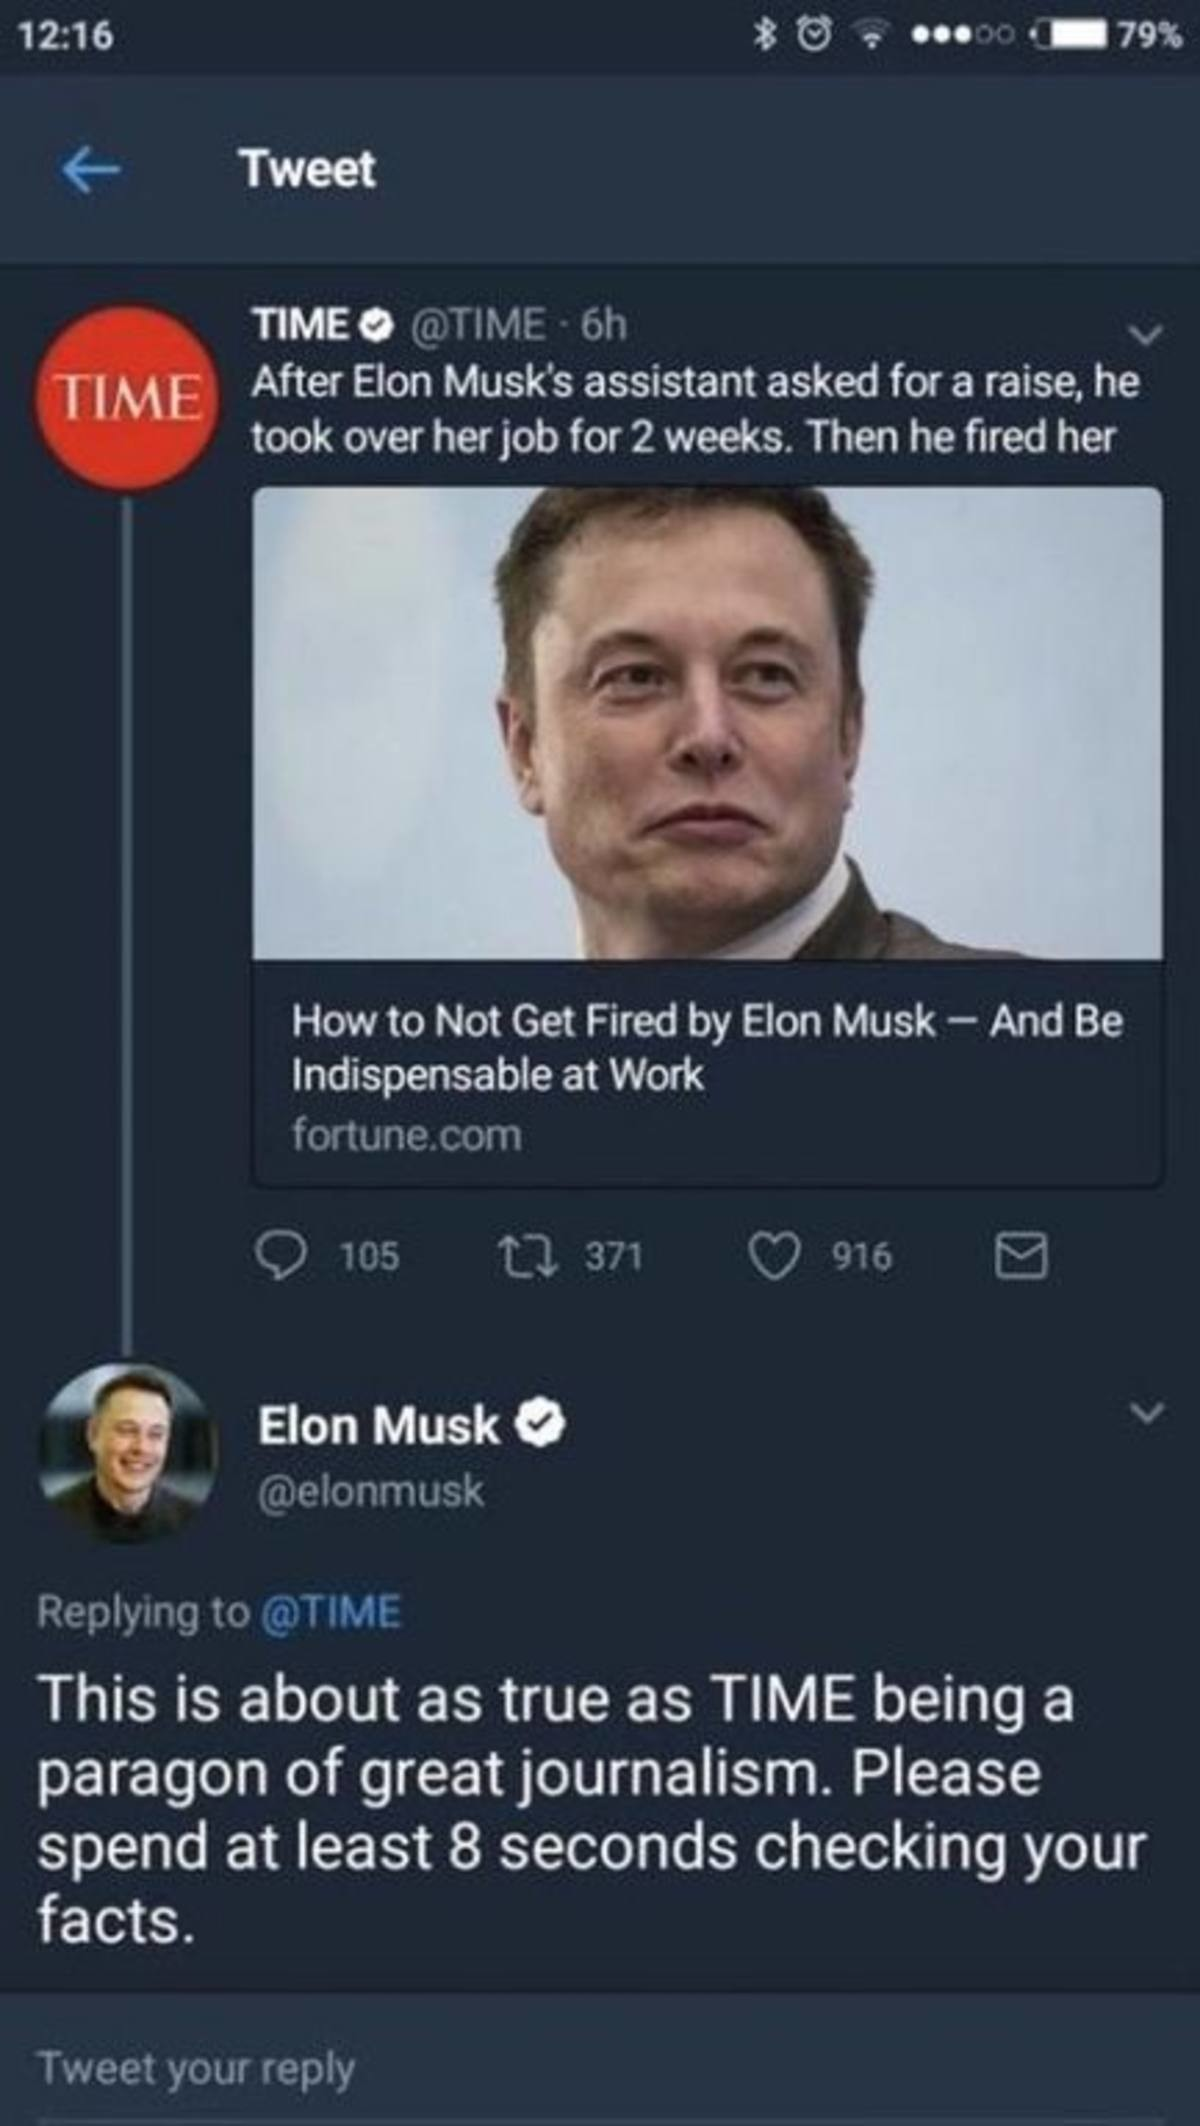 Time Magazine. join list: ElonMusk (796 subs)Mention History. w Tweet TIME TIME After Elon Musk' s assistant asked for a raise, he took over hanjob for 2 weeks.